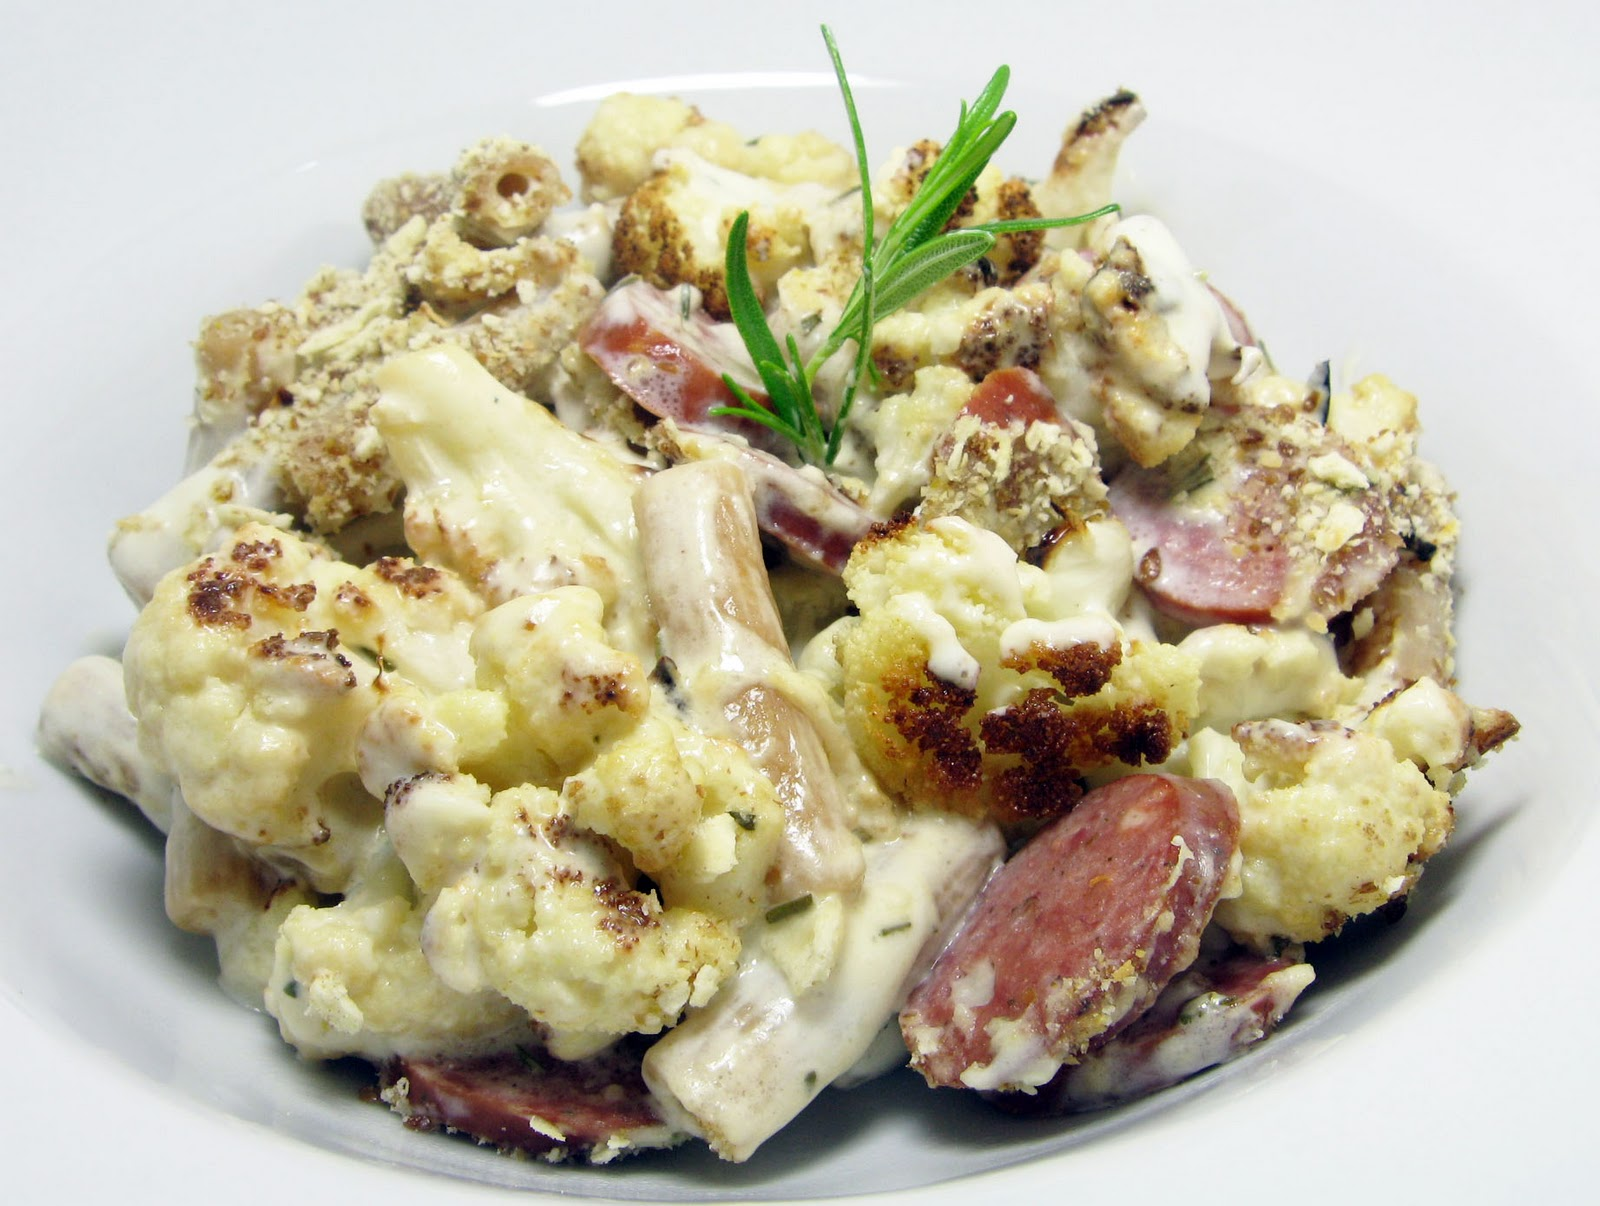 ... Pasta with Creamy Blue Cheese Rosemary Sauce, Roasted Cauliflower and